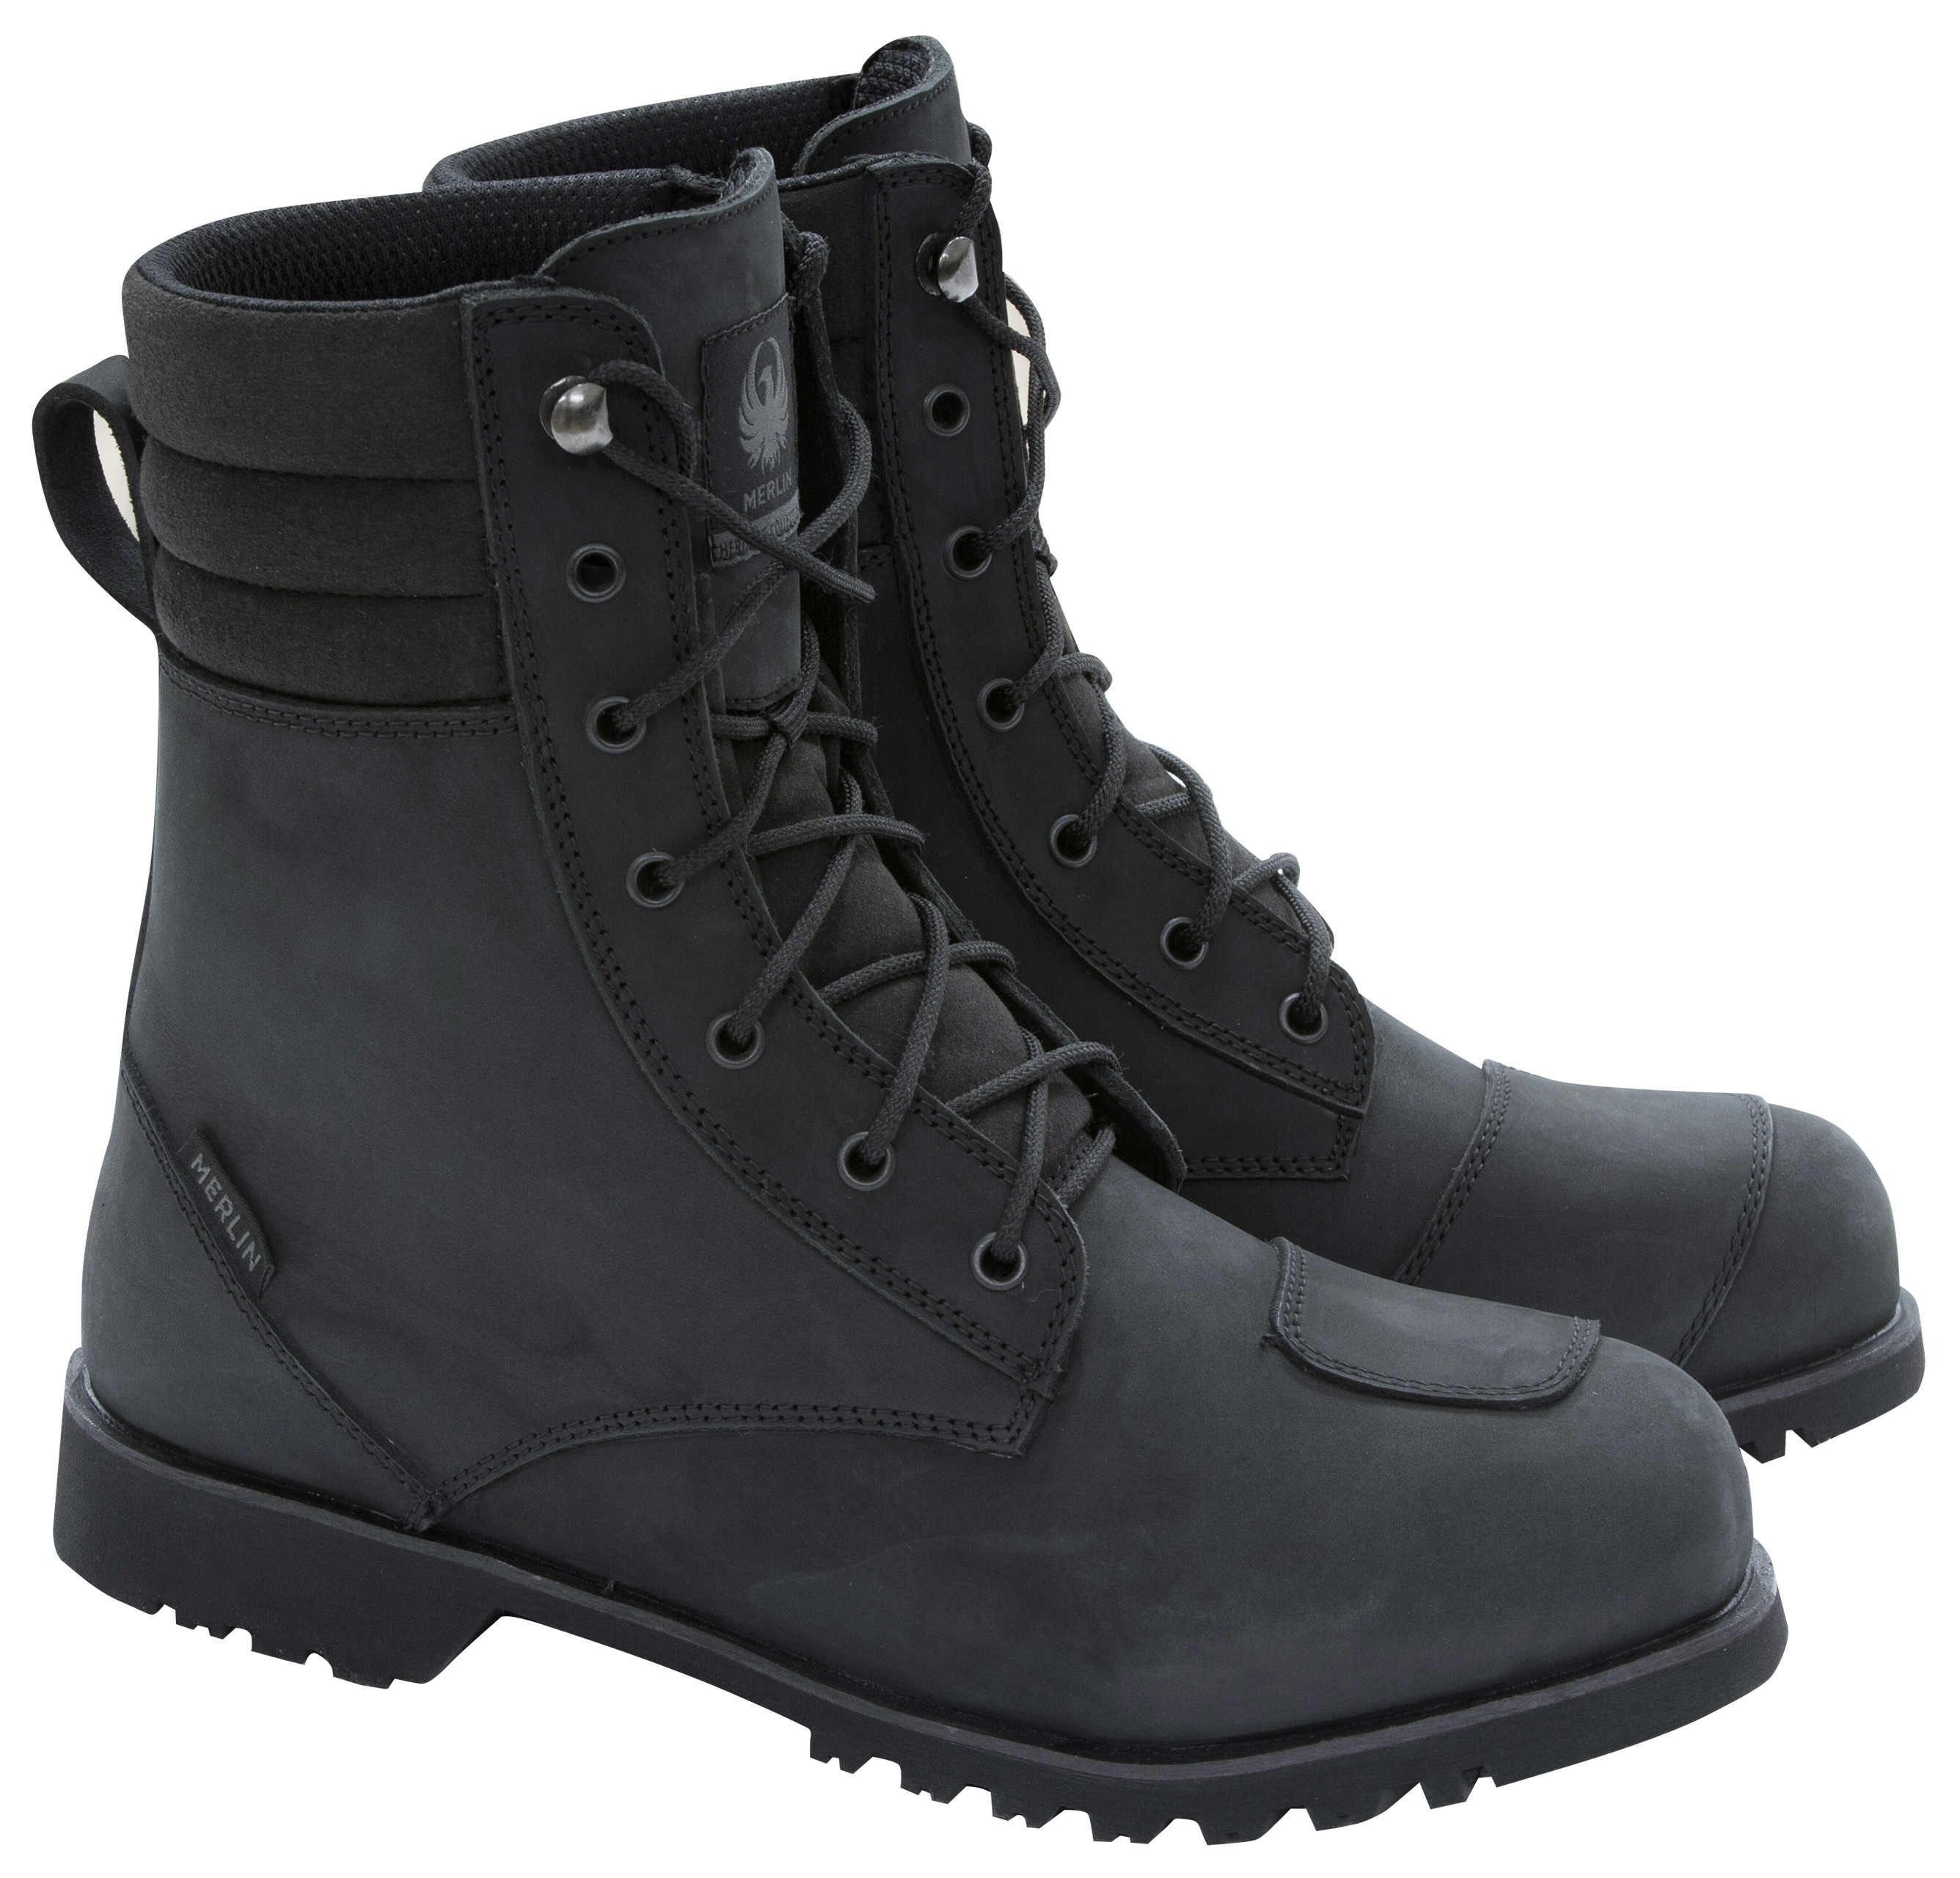 Merlin G24 Combat Ladies Waterproof Leather Motorcycle Boots Black UK 4